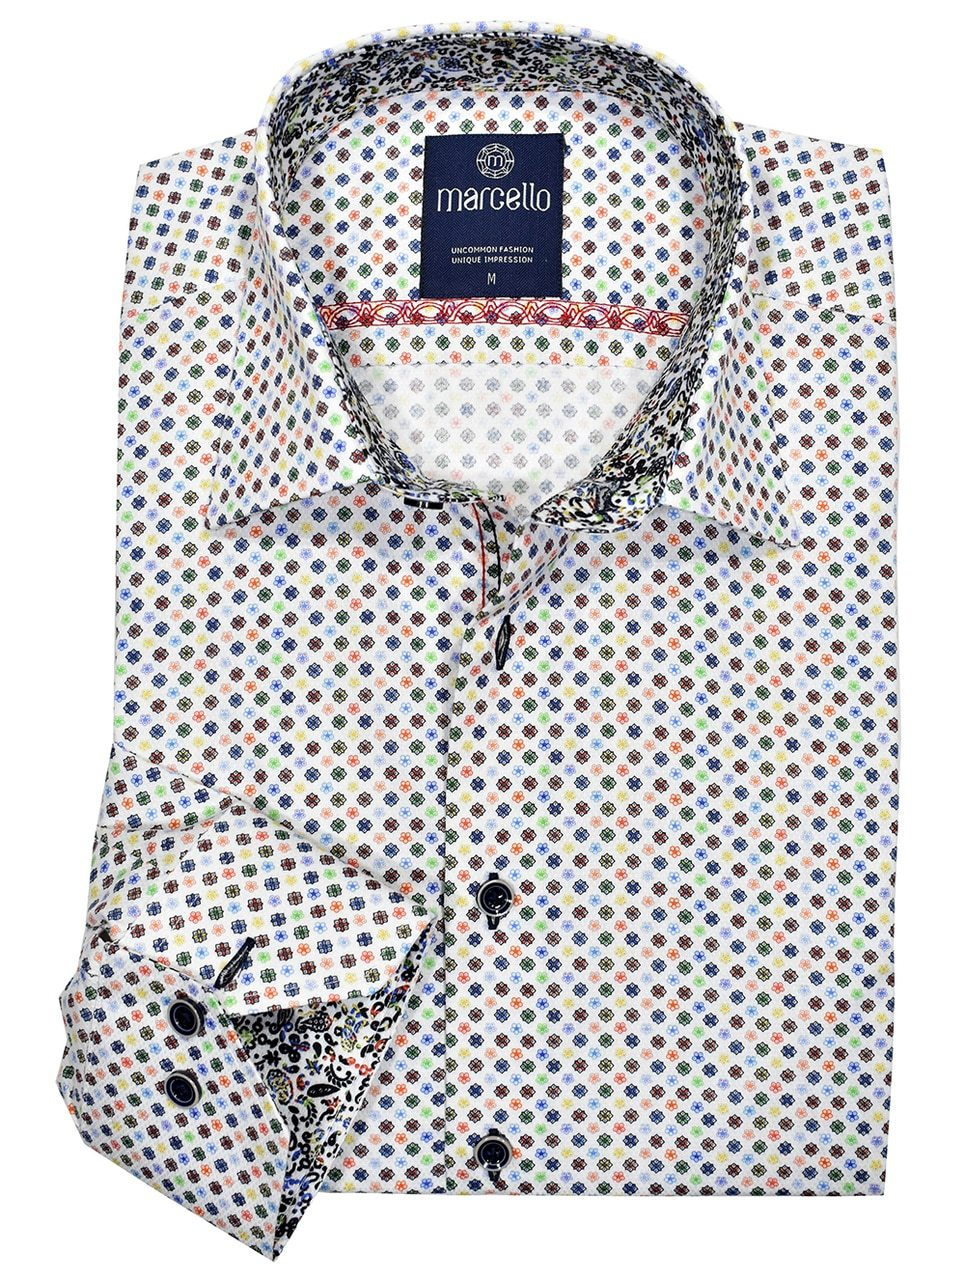 W1008 Rainbow Medallion Cotton Shirt - Marcello Sport